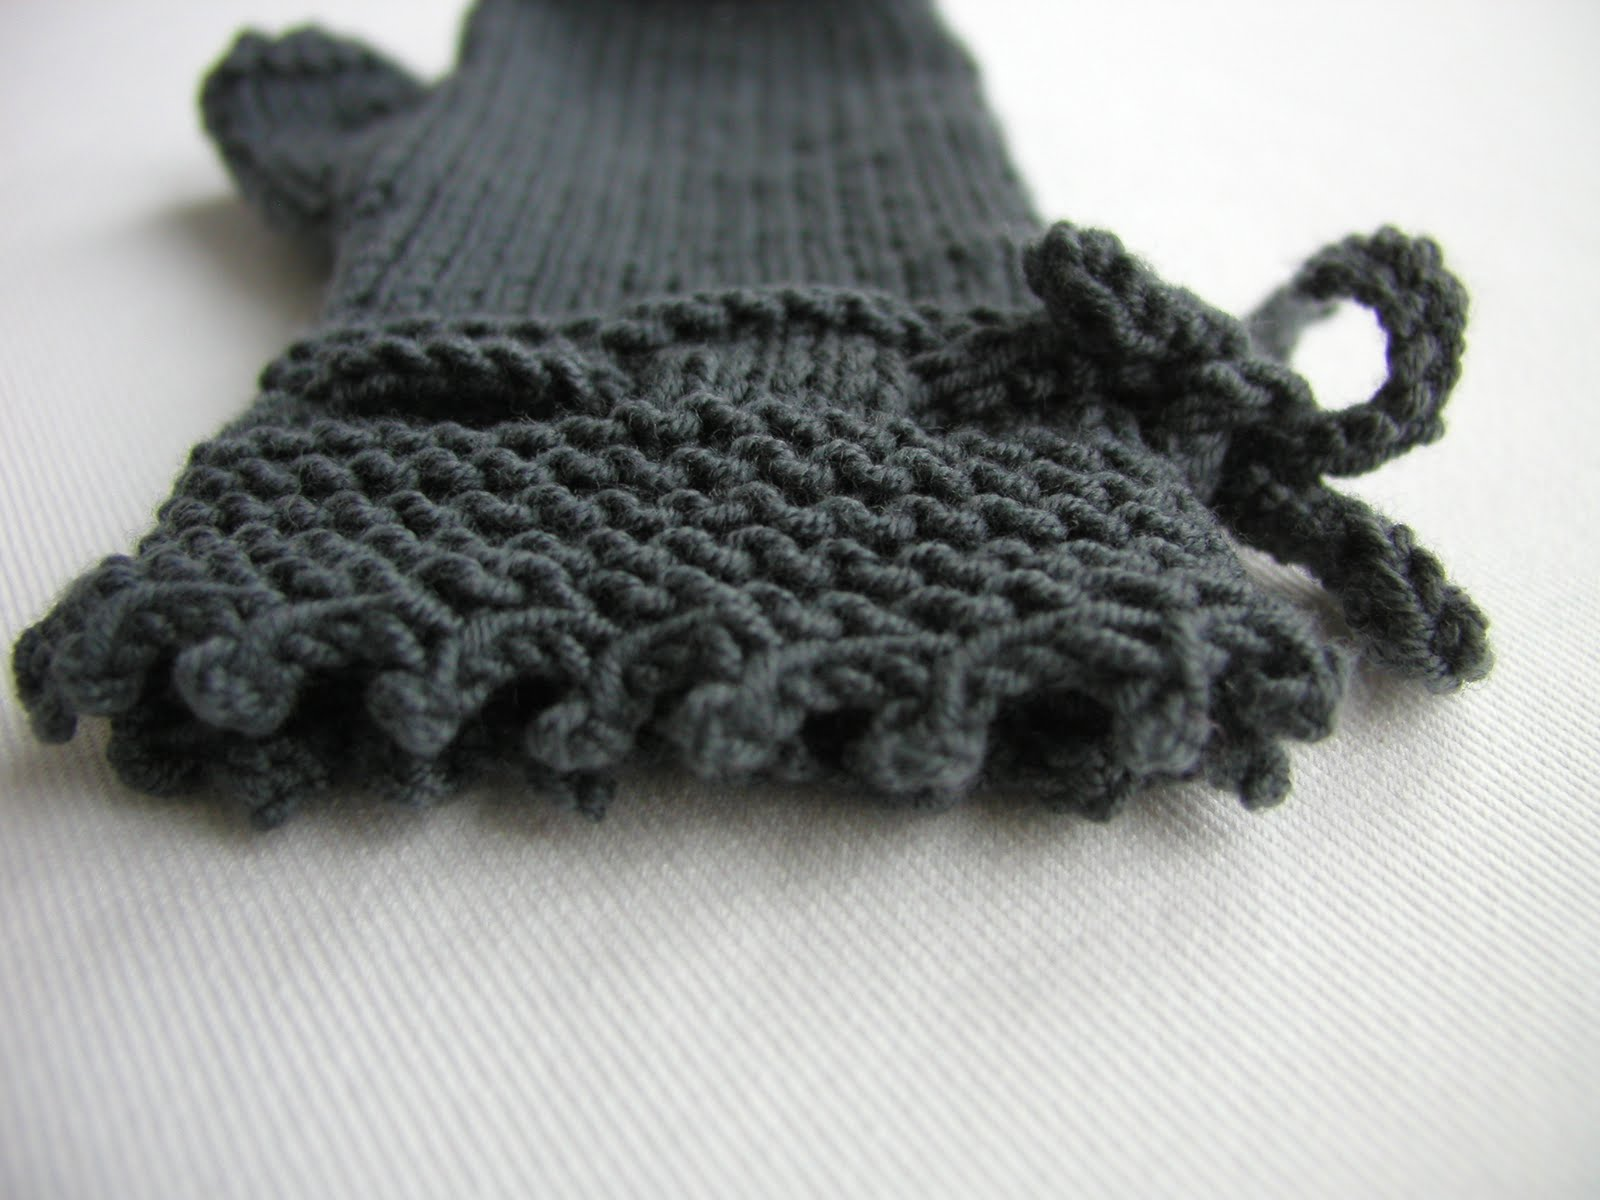 Hand Knitted Things: Picot Edge Cast Off